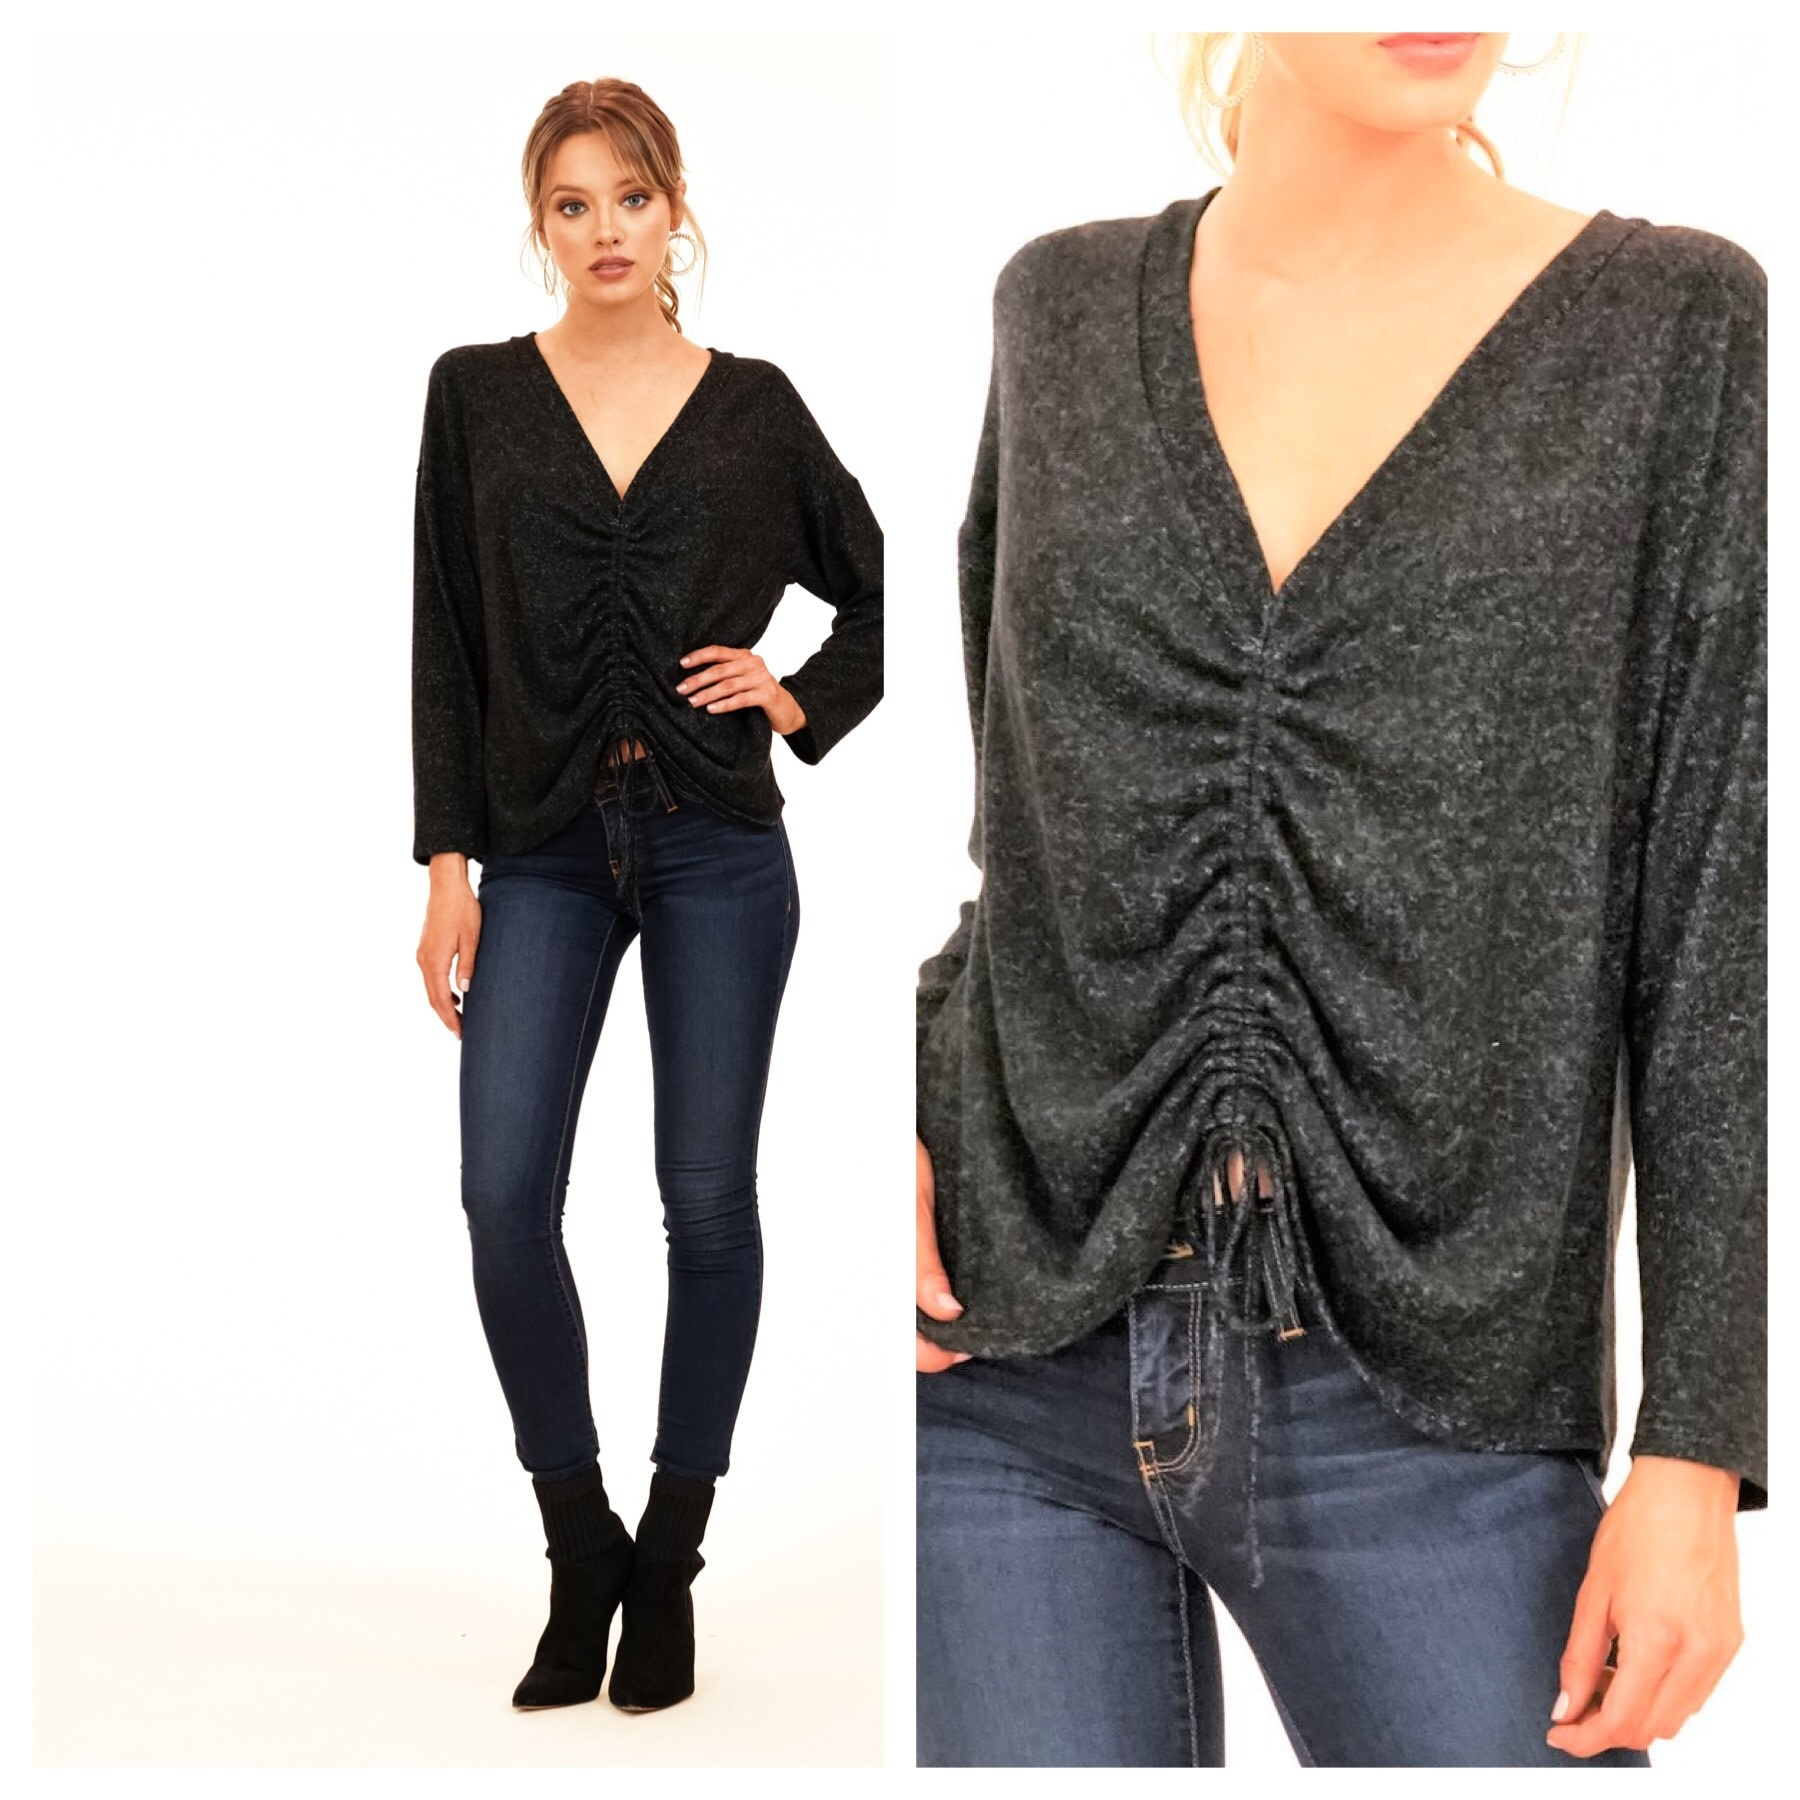 Cinhced Front Knit Top